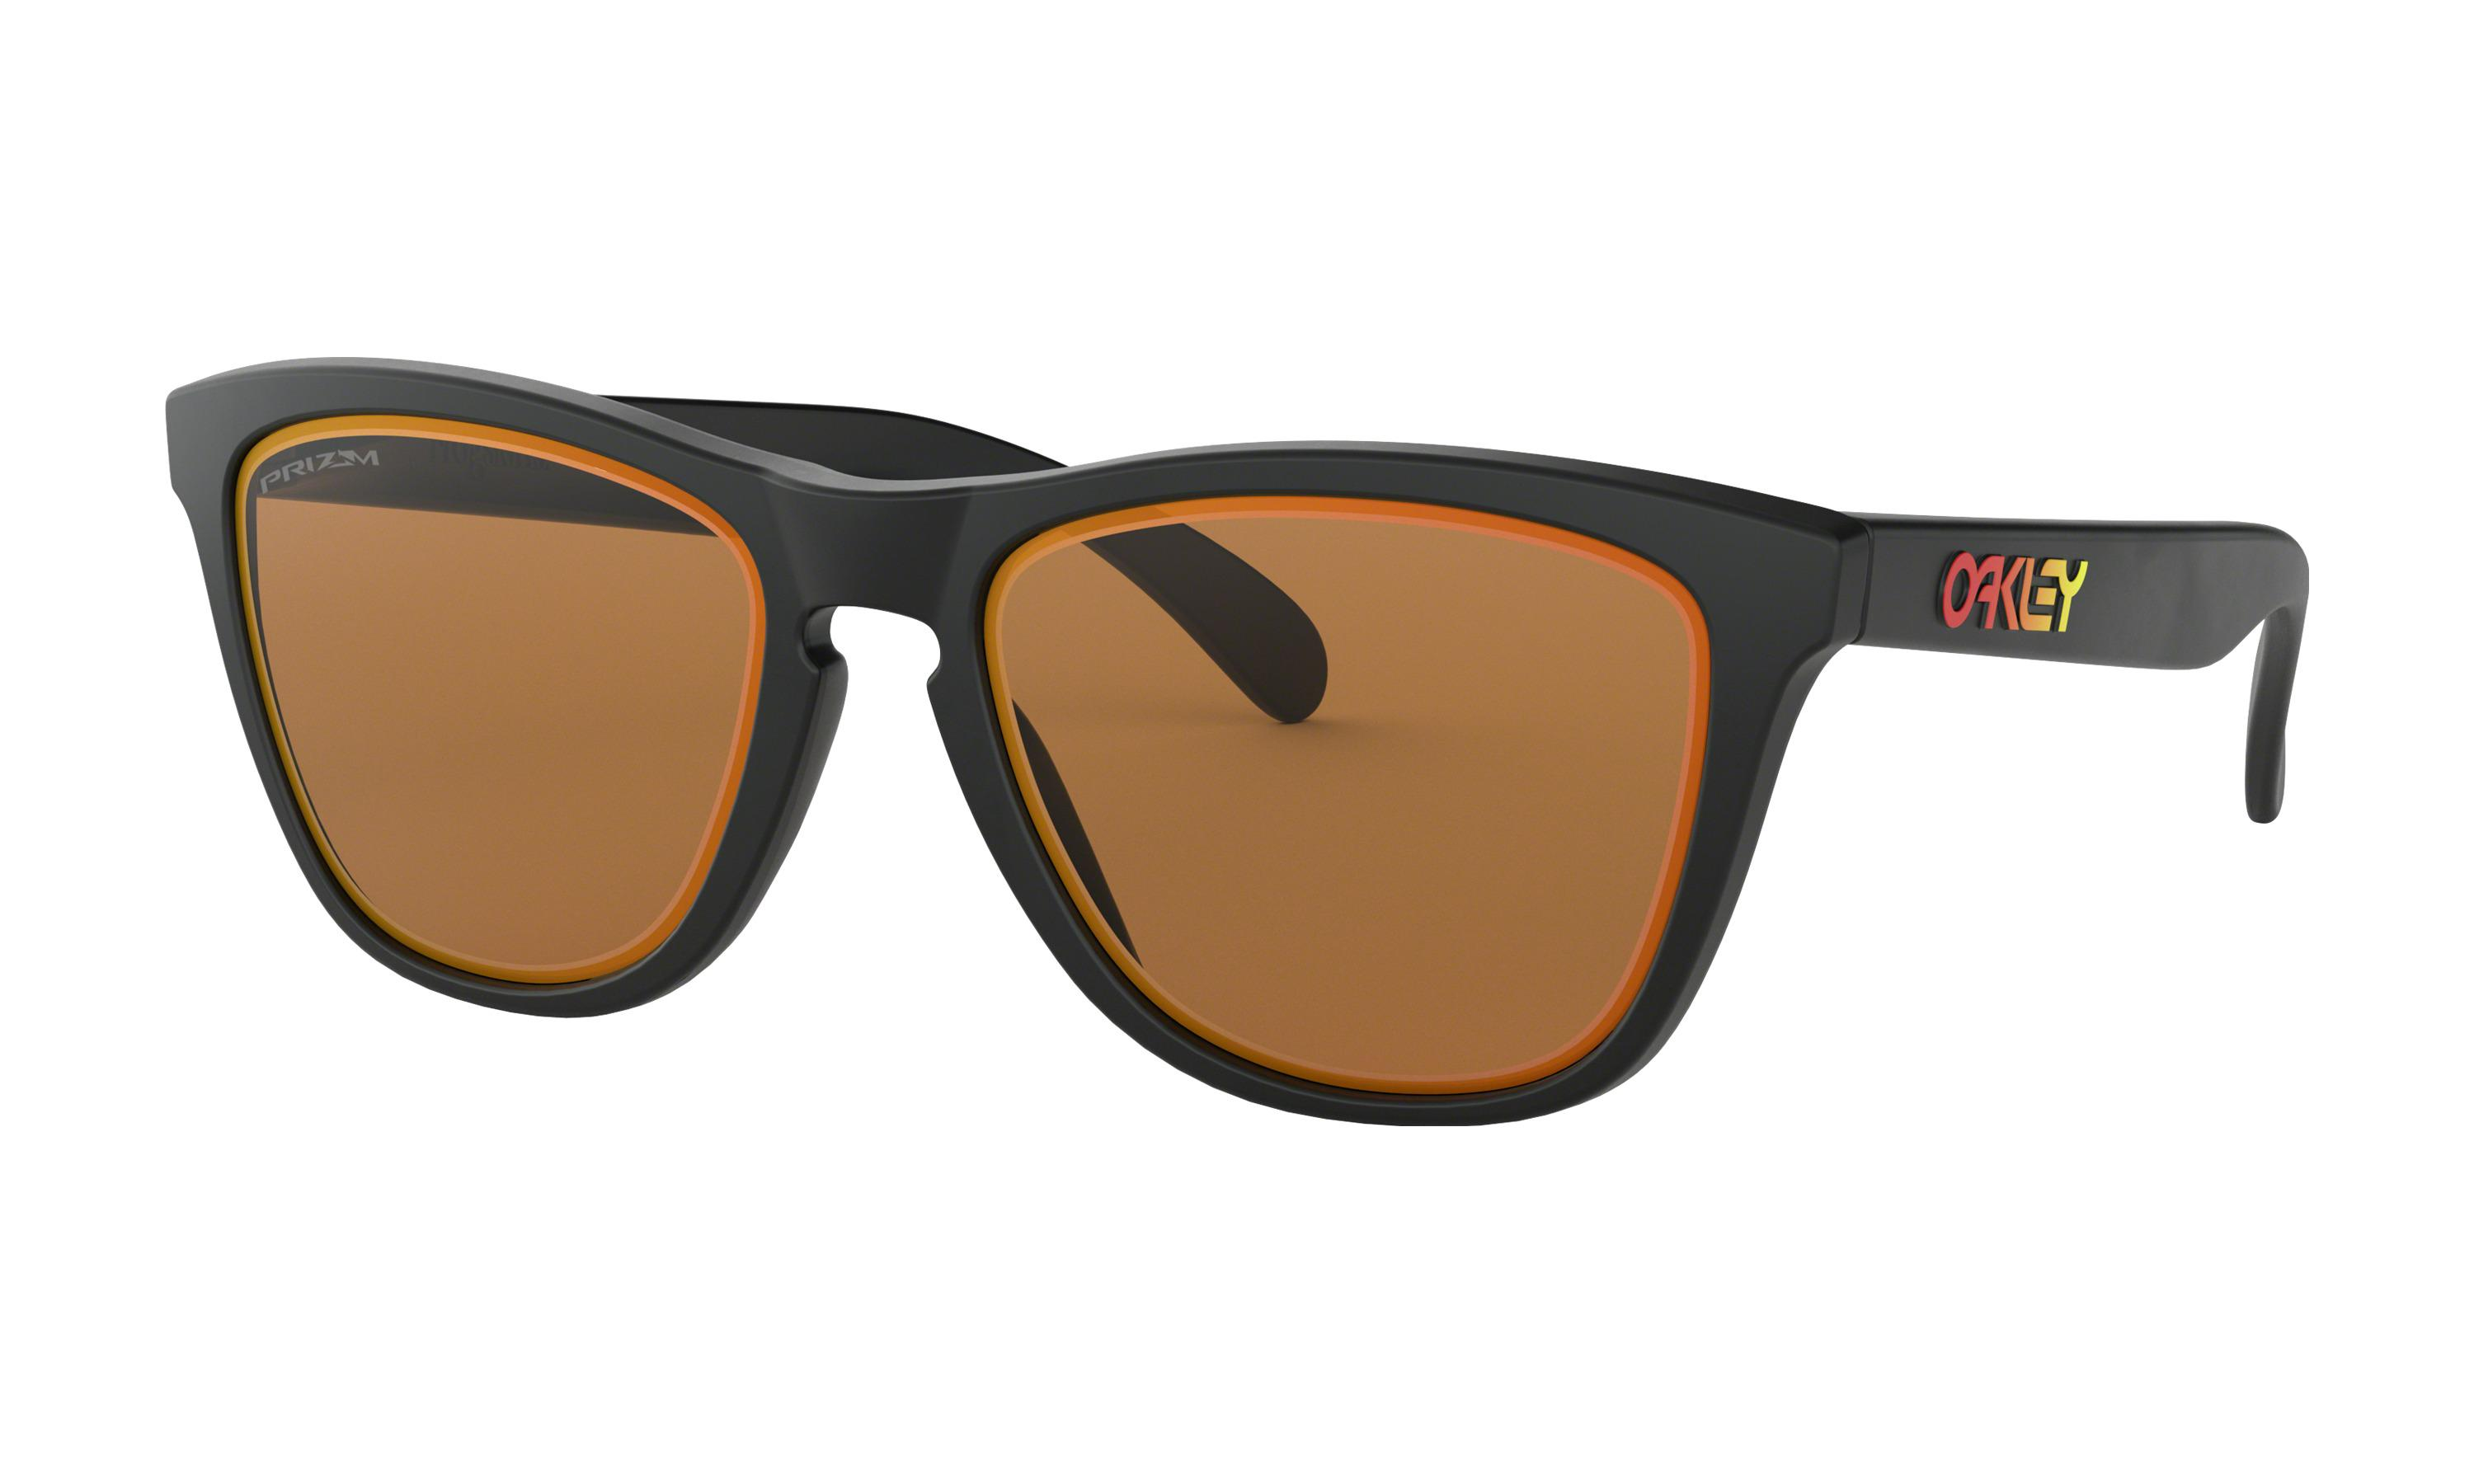 771381d5d2 Lyst - Oakley Frogskinstm Fire And Ice Collection for Men